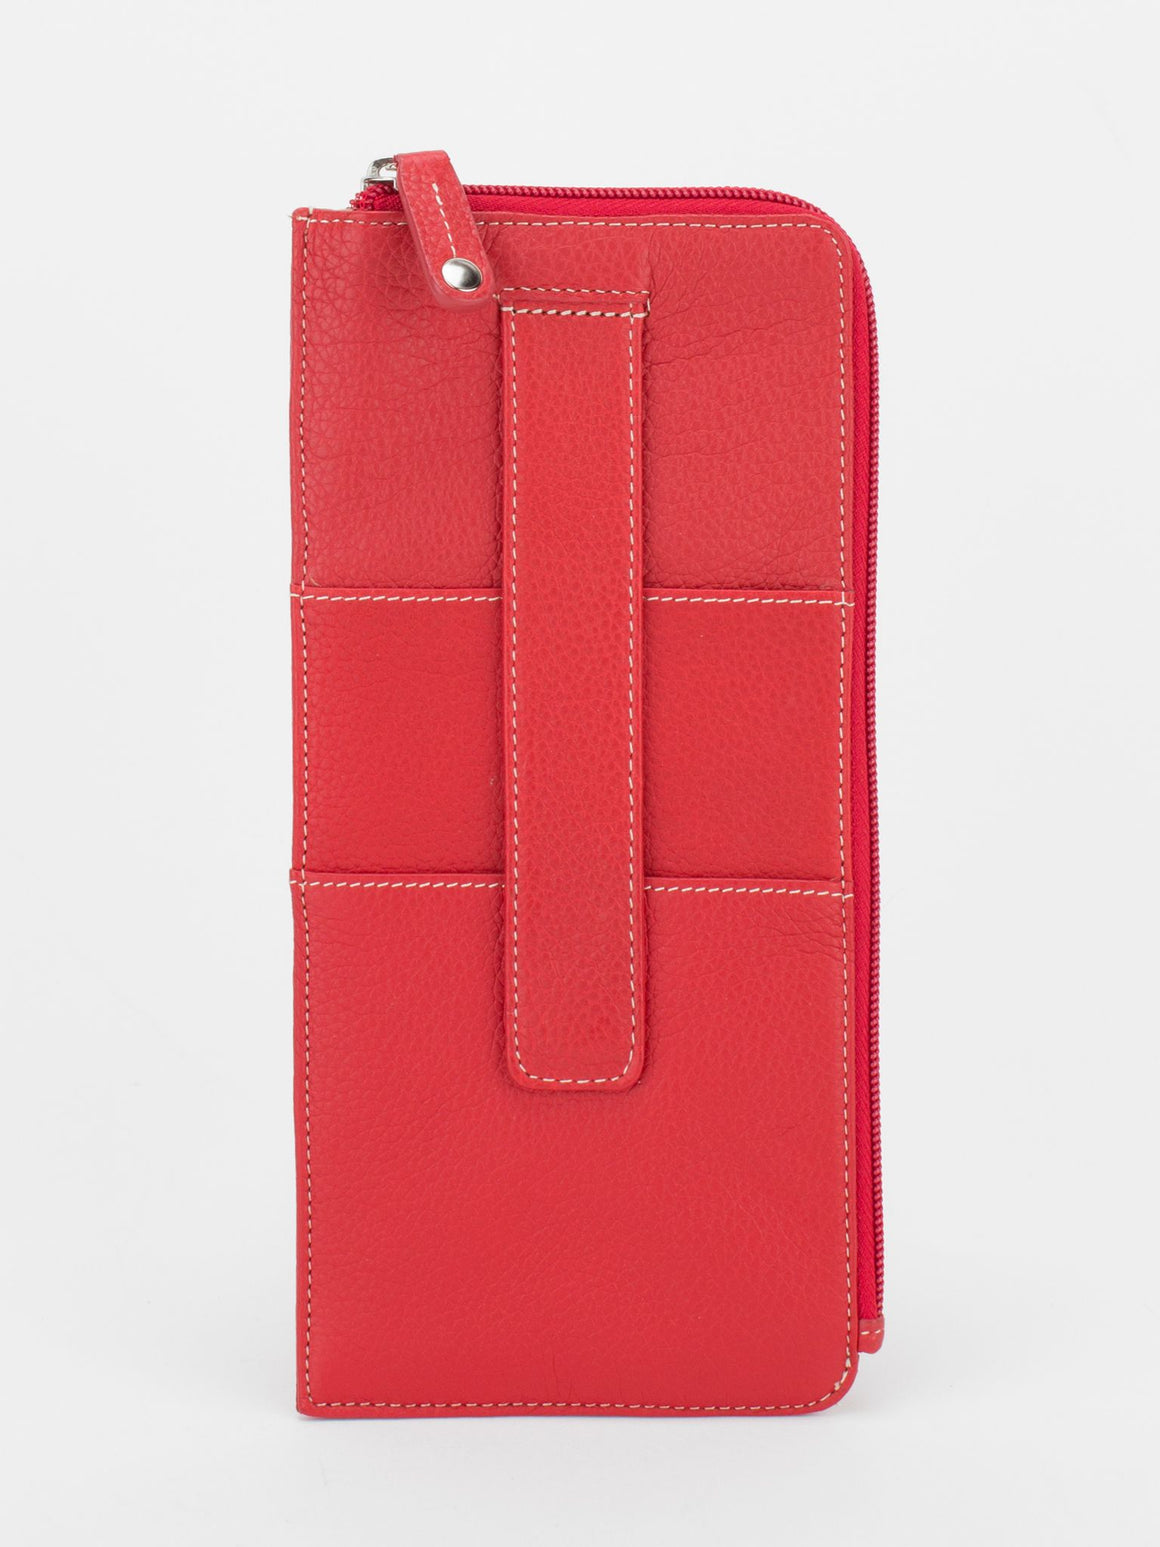 Skyler Leather Travel Wallet - Red